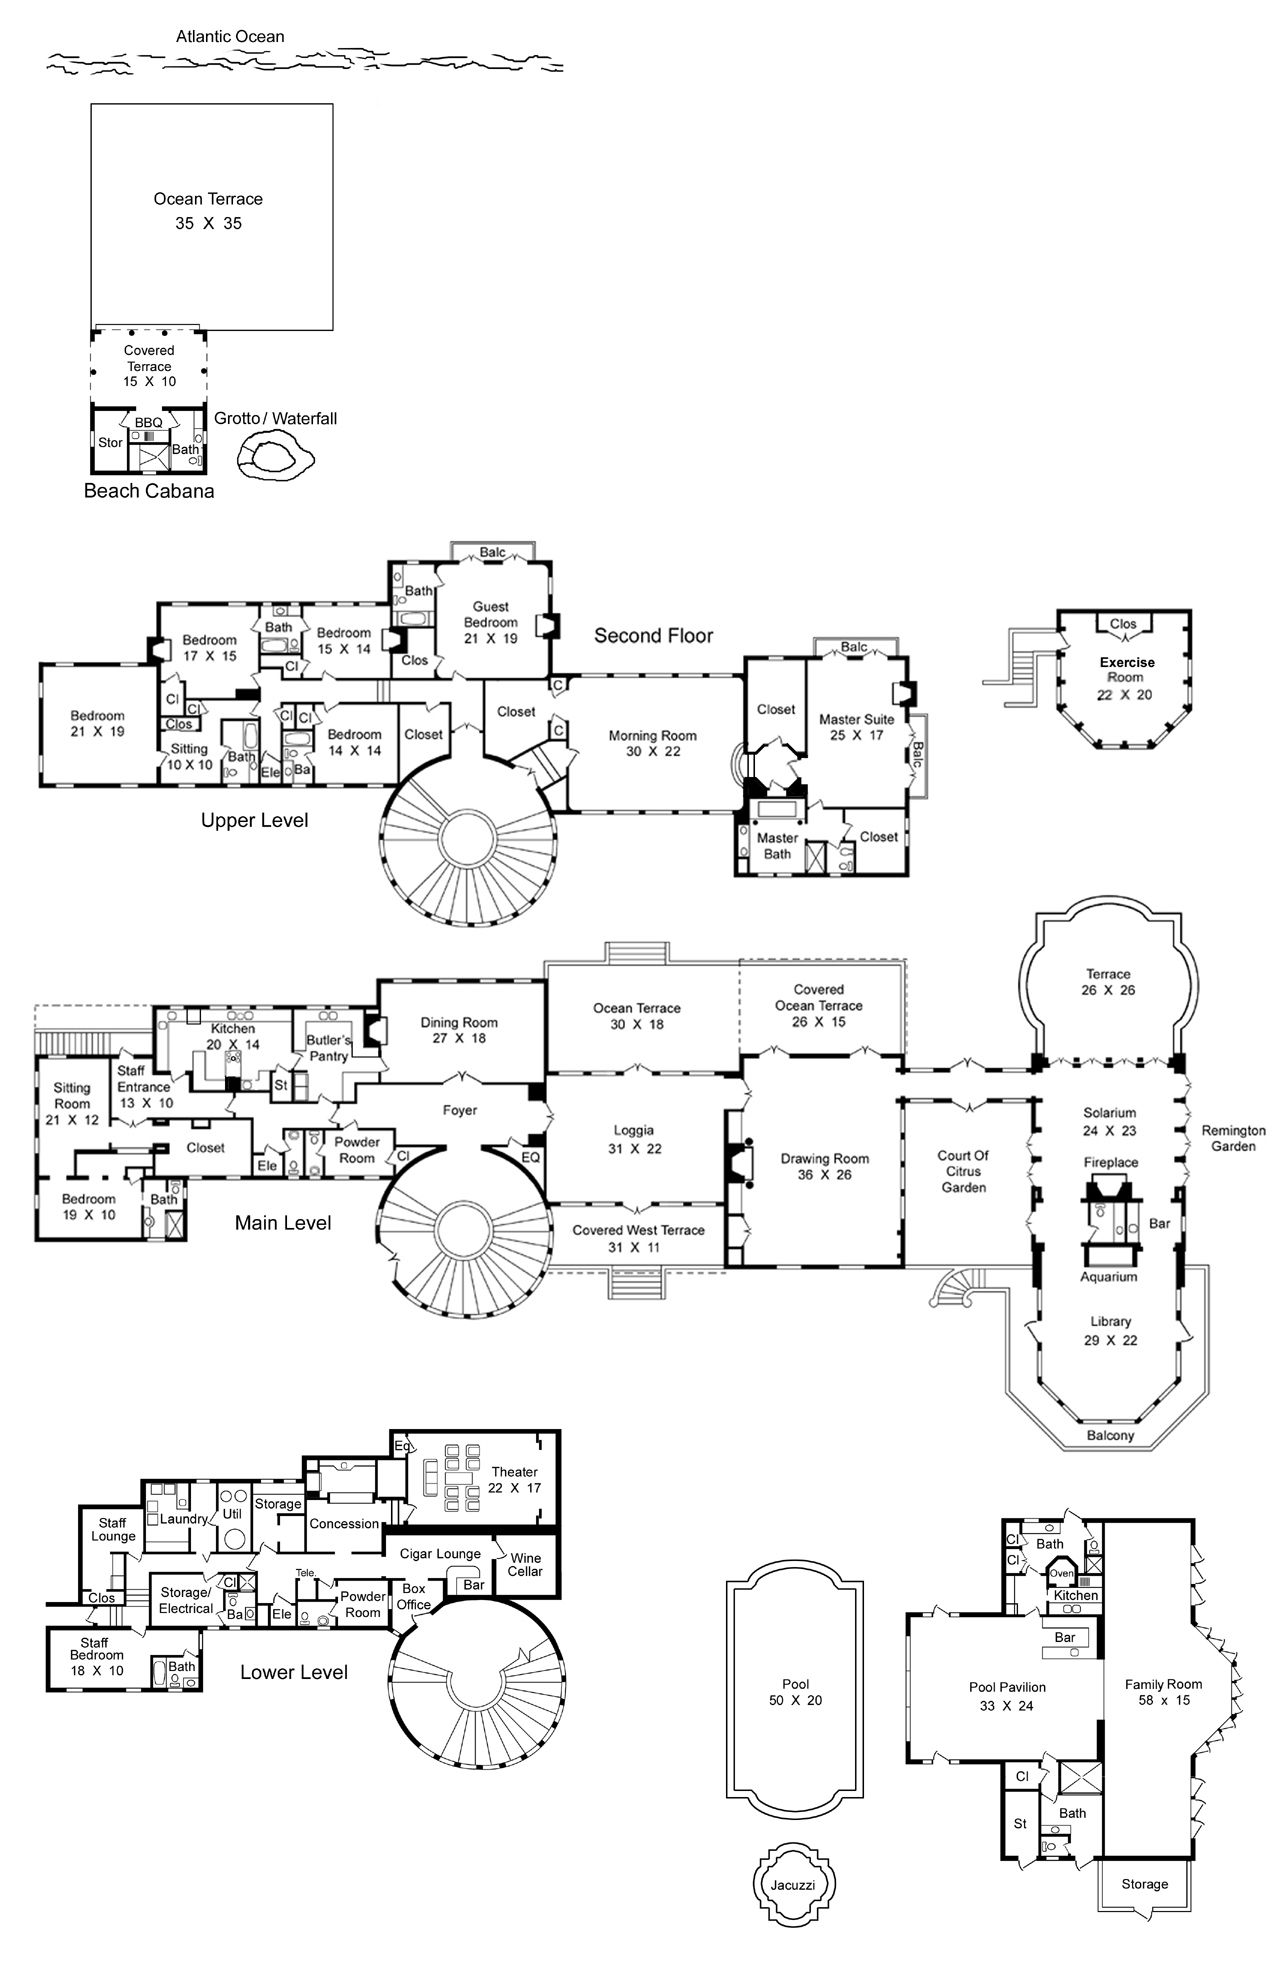 Image From Http Www Deginan Com Wp Content Uploads 6 6 Floor Plans For Castles Mansions Floor Plans For Man Mansion Floor Plan Luxury House Plans Floor Plans